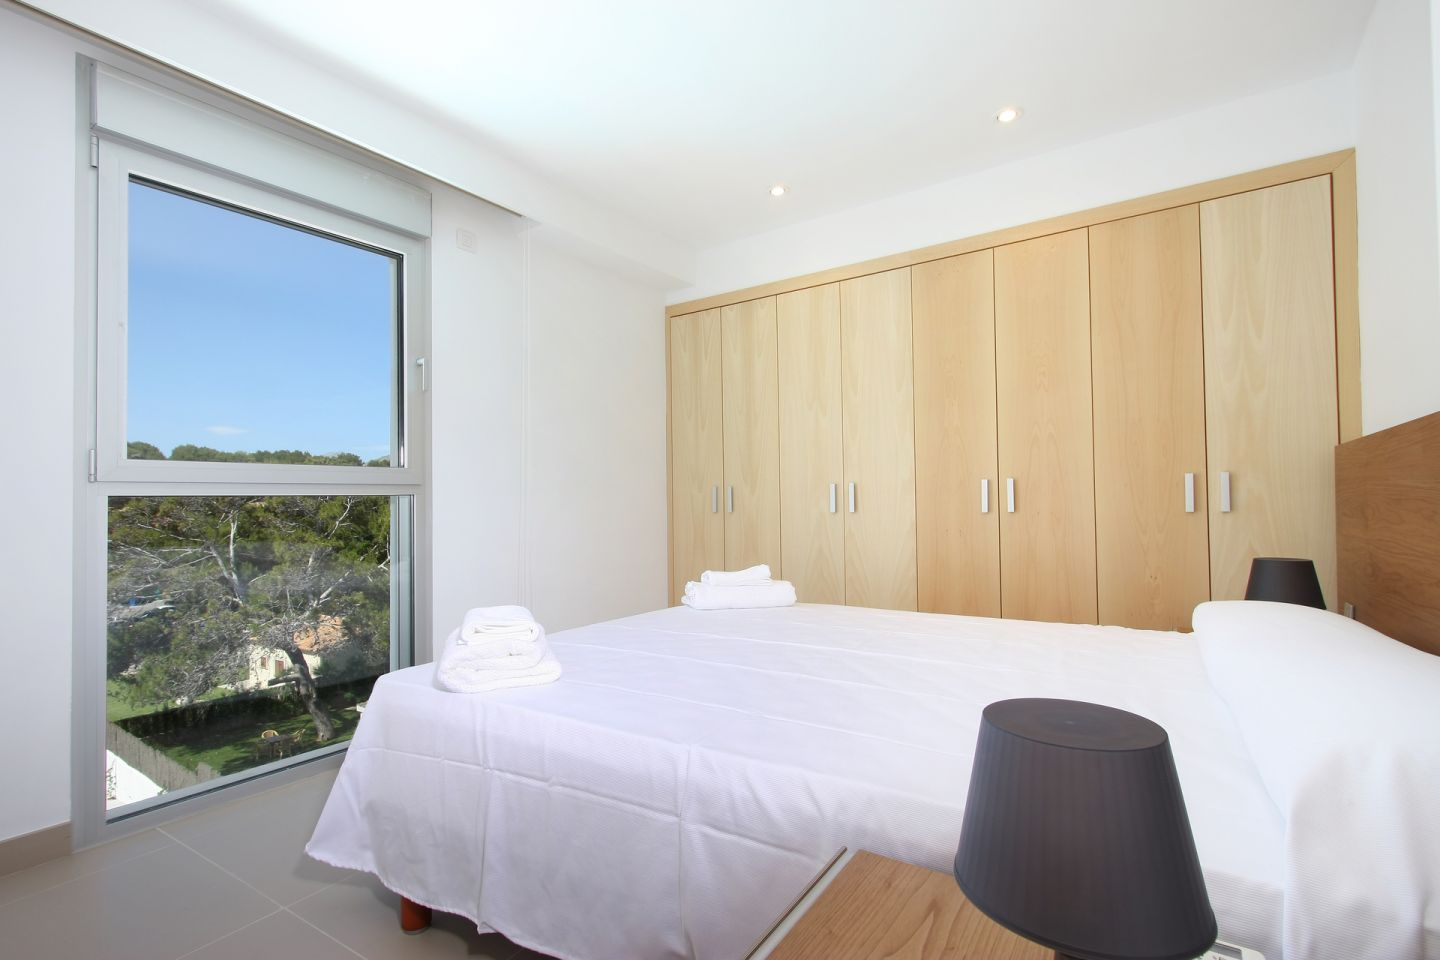 2 Bed Ground Floor for sale in Cala San Vicente 8